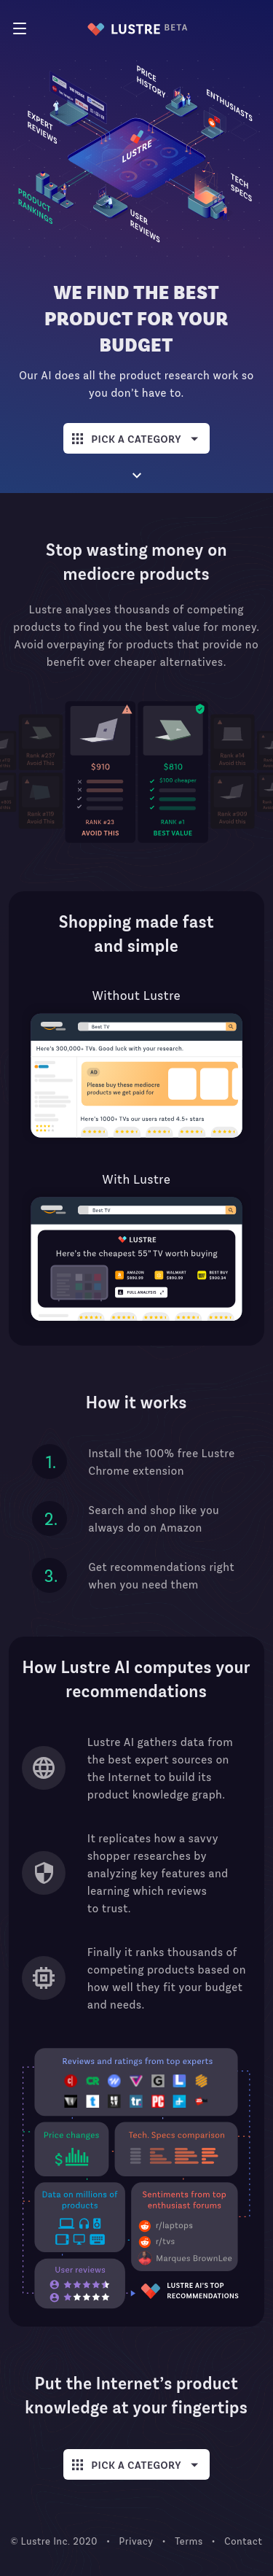 Example of Design for Shopping, Consumer Resources, Product Reviews & Price Comparisons, Mobile Landing Page by lustre.ai | Mobile Landing Page Design